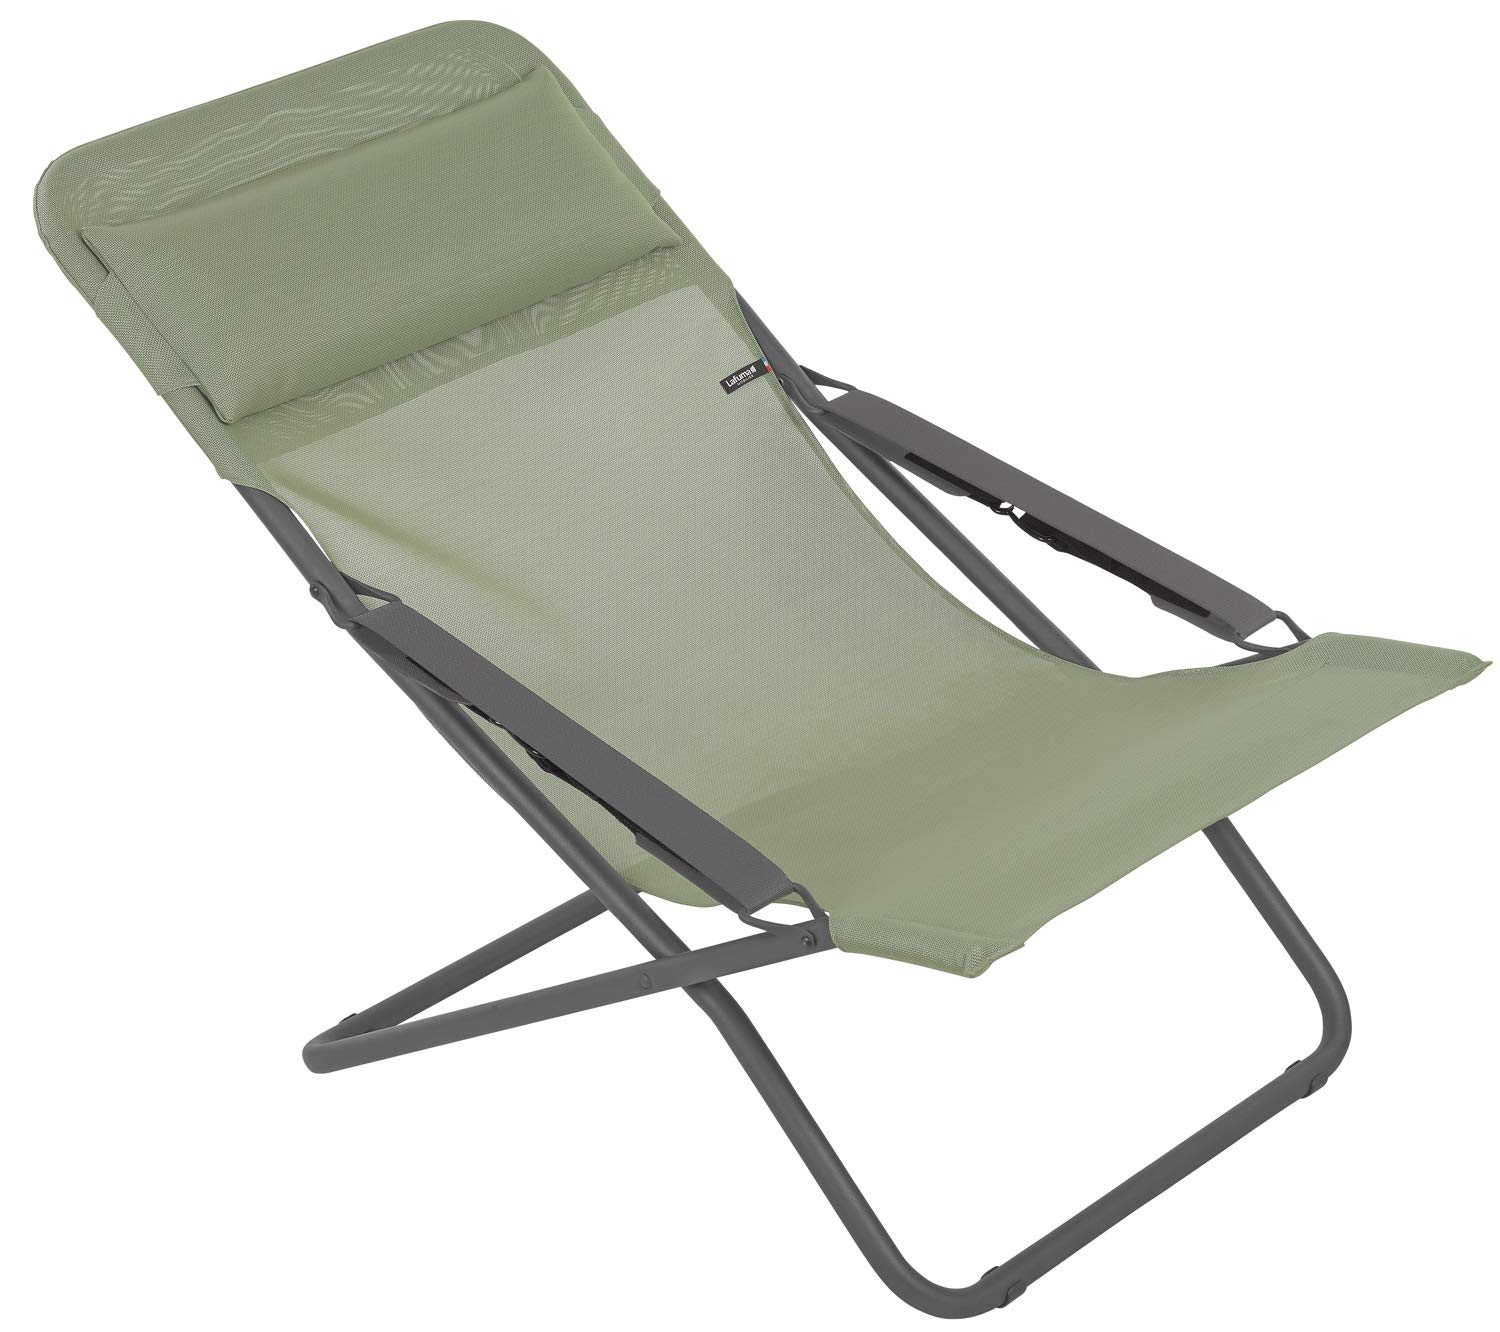 Lafuma LFM28638557 Patio and Poolside-Foldable Transats and sunbeds, Moss by Lafuma